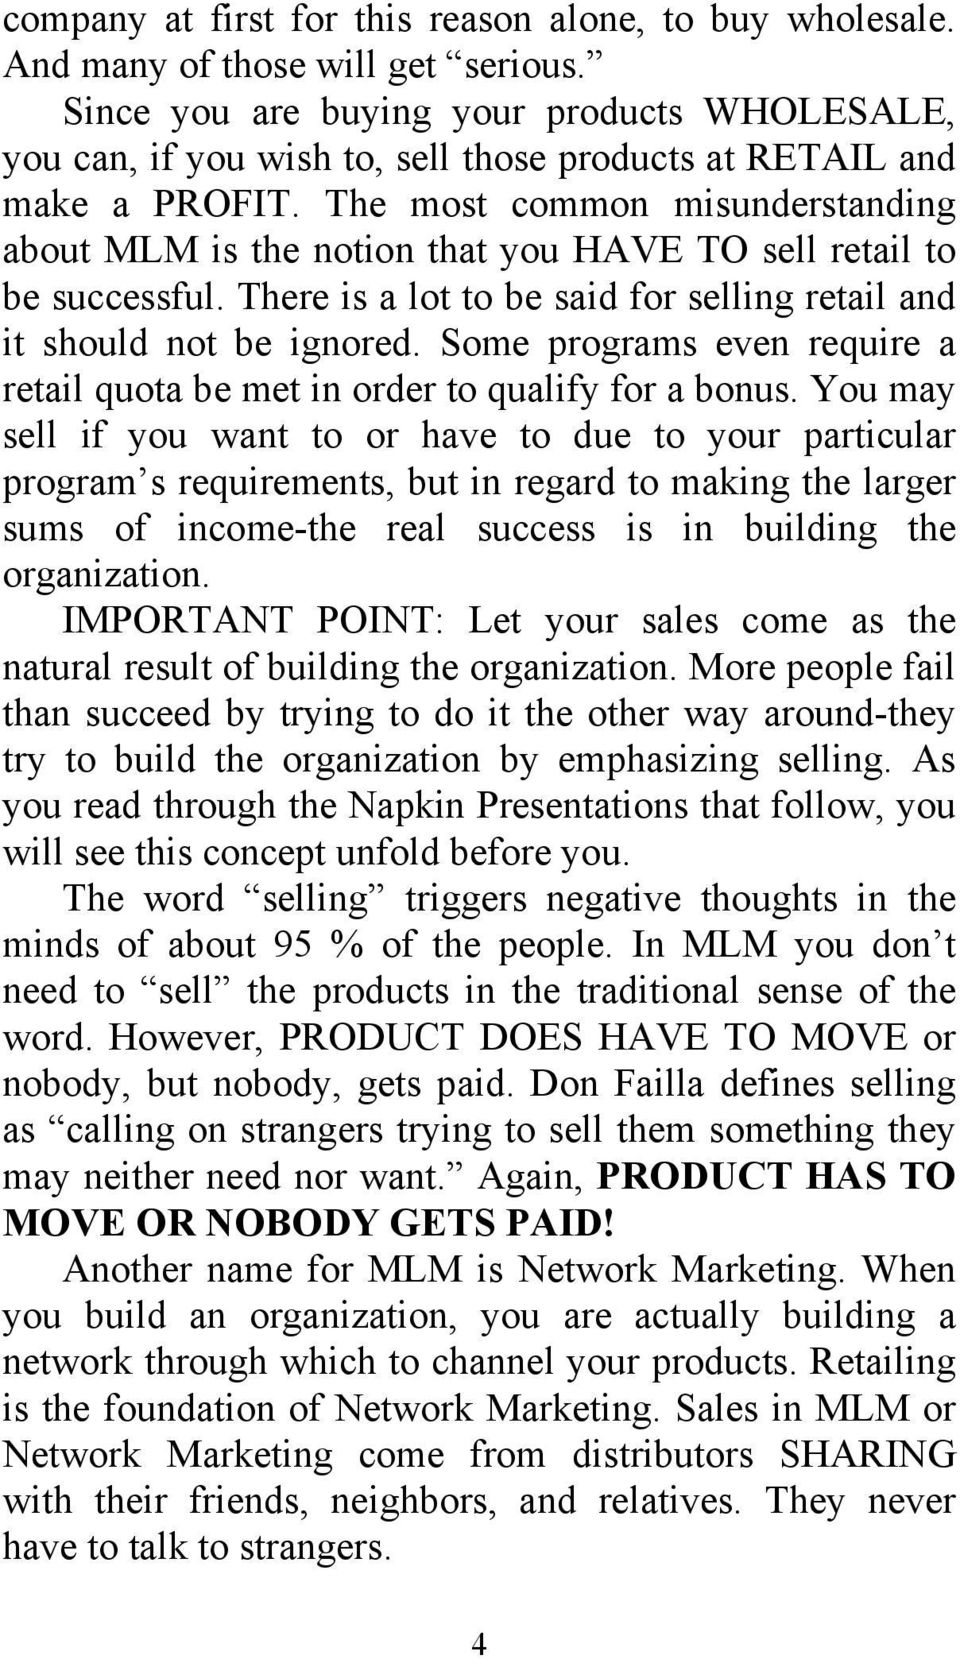 The most common misunderstanding about MLM is the notion that you HAVE TO sell retail to be successful. There is a lot to be said for selling retail and it should not be ignored.